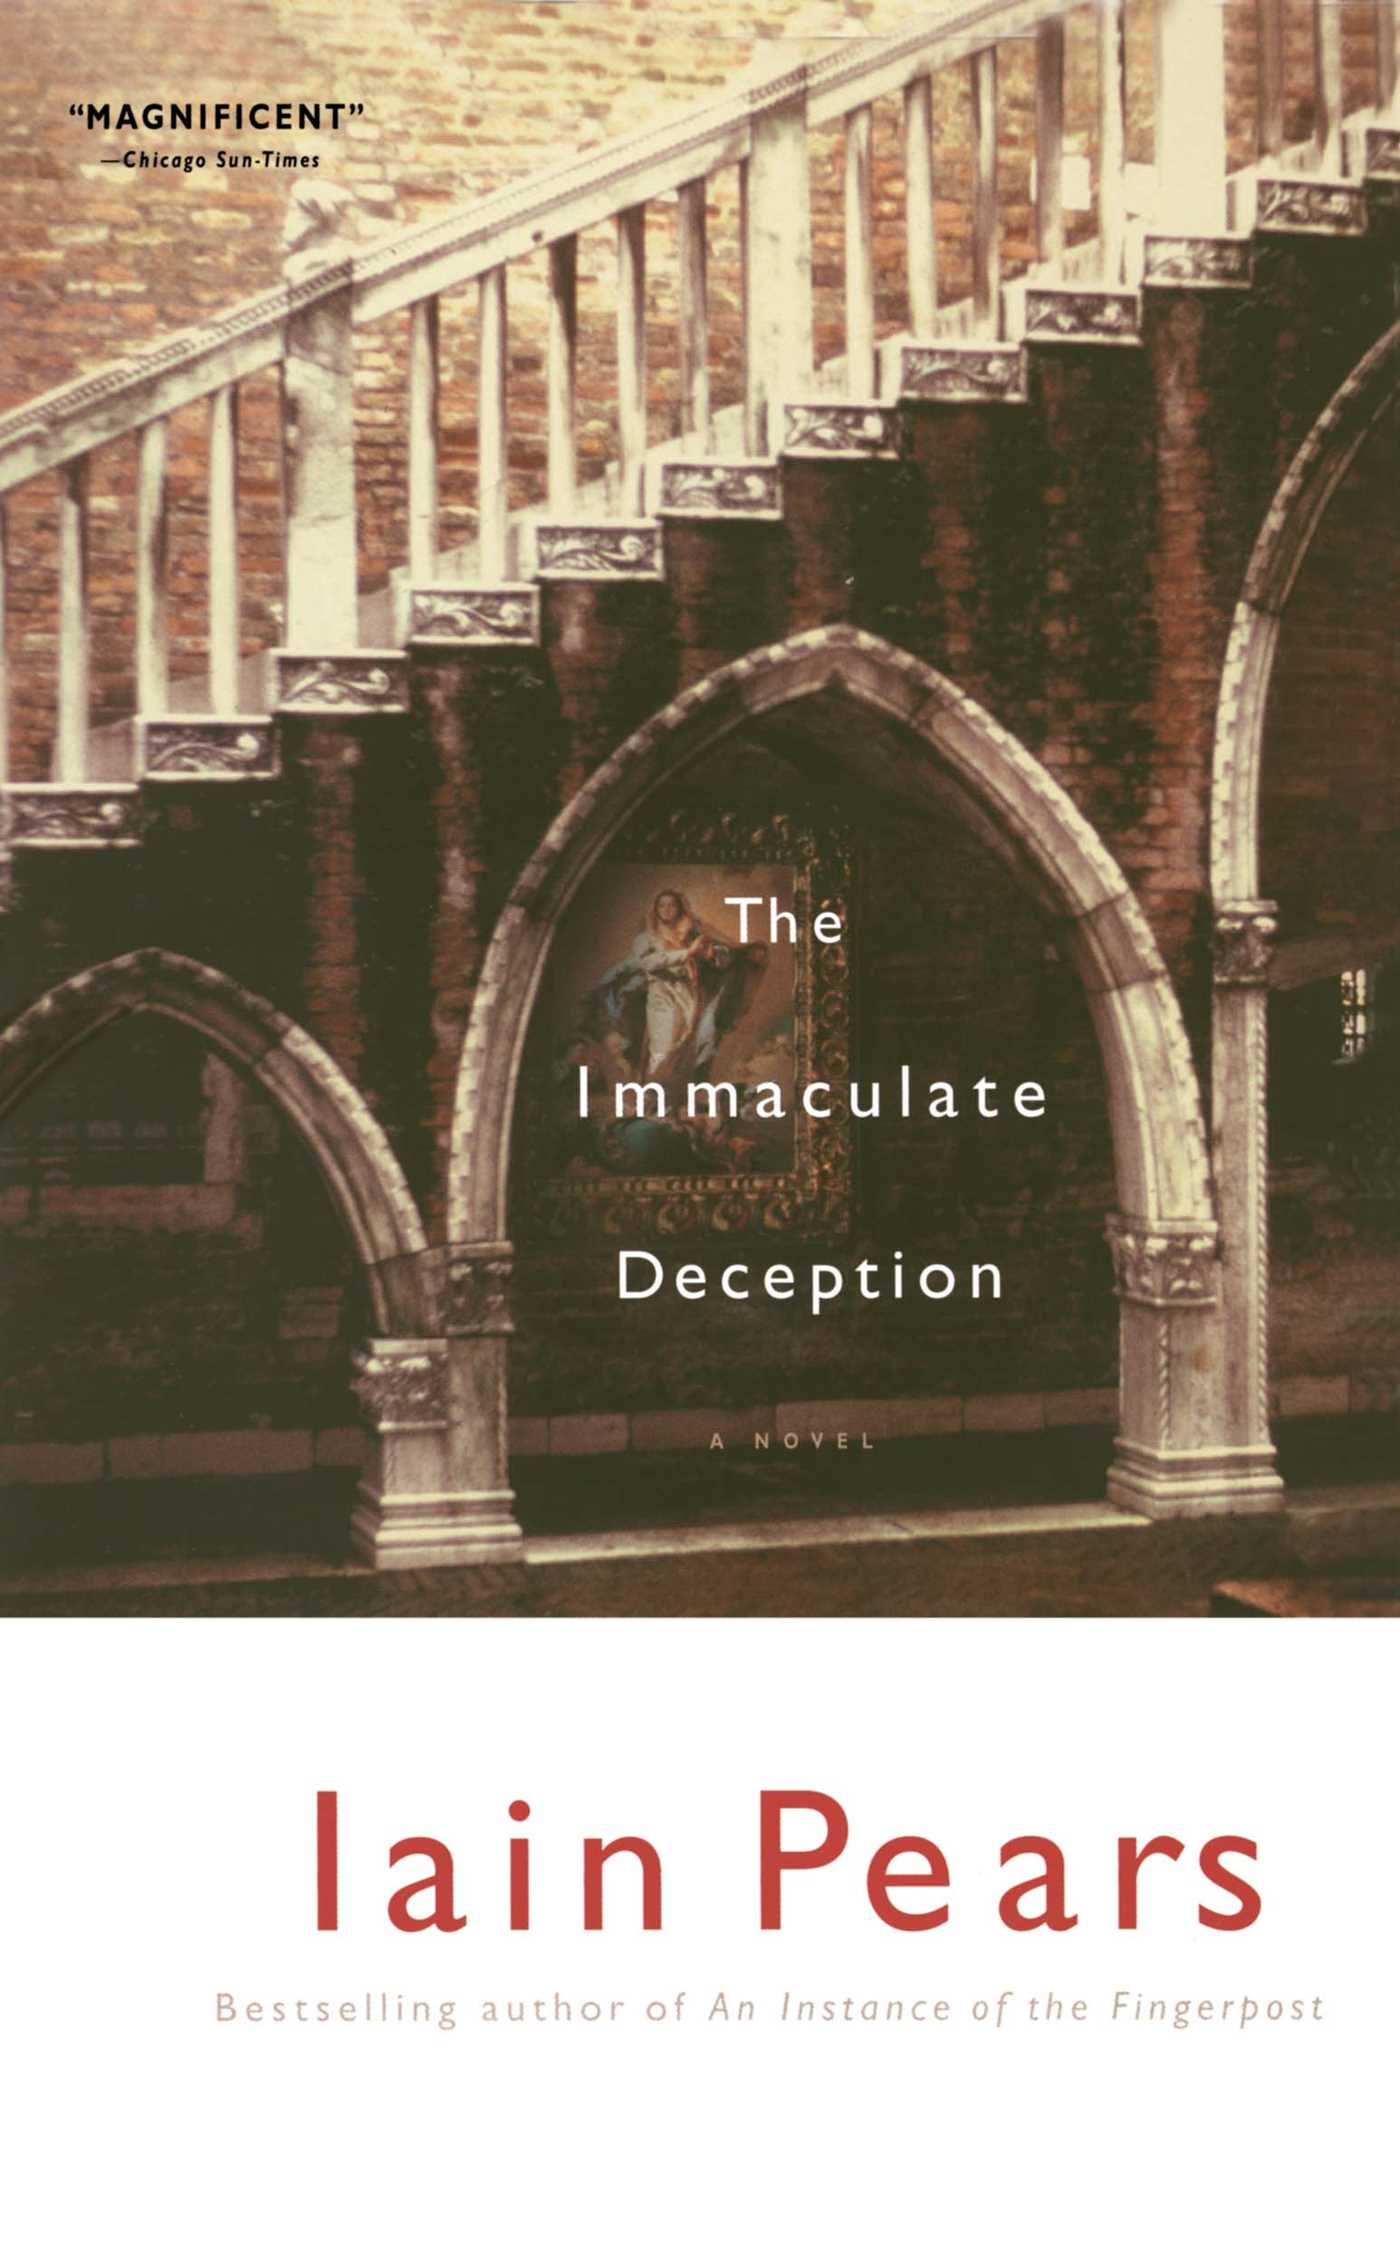 Immaculate-deception-9780743272414_hr